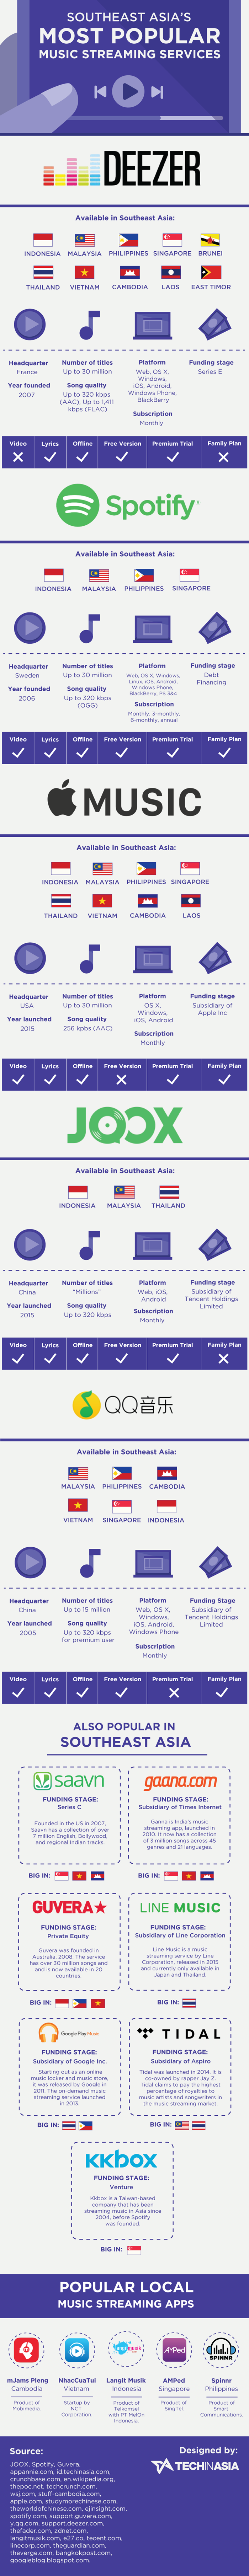 southeast-asia-popular-music-streaming-service-infographic-700